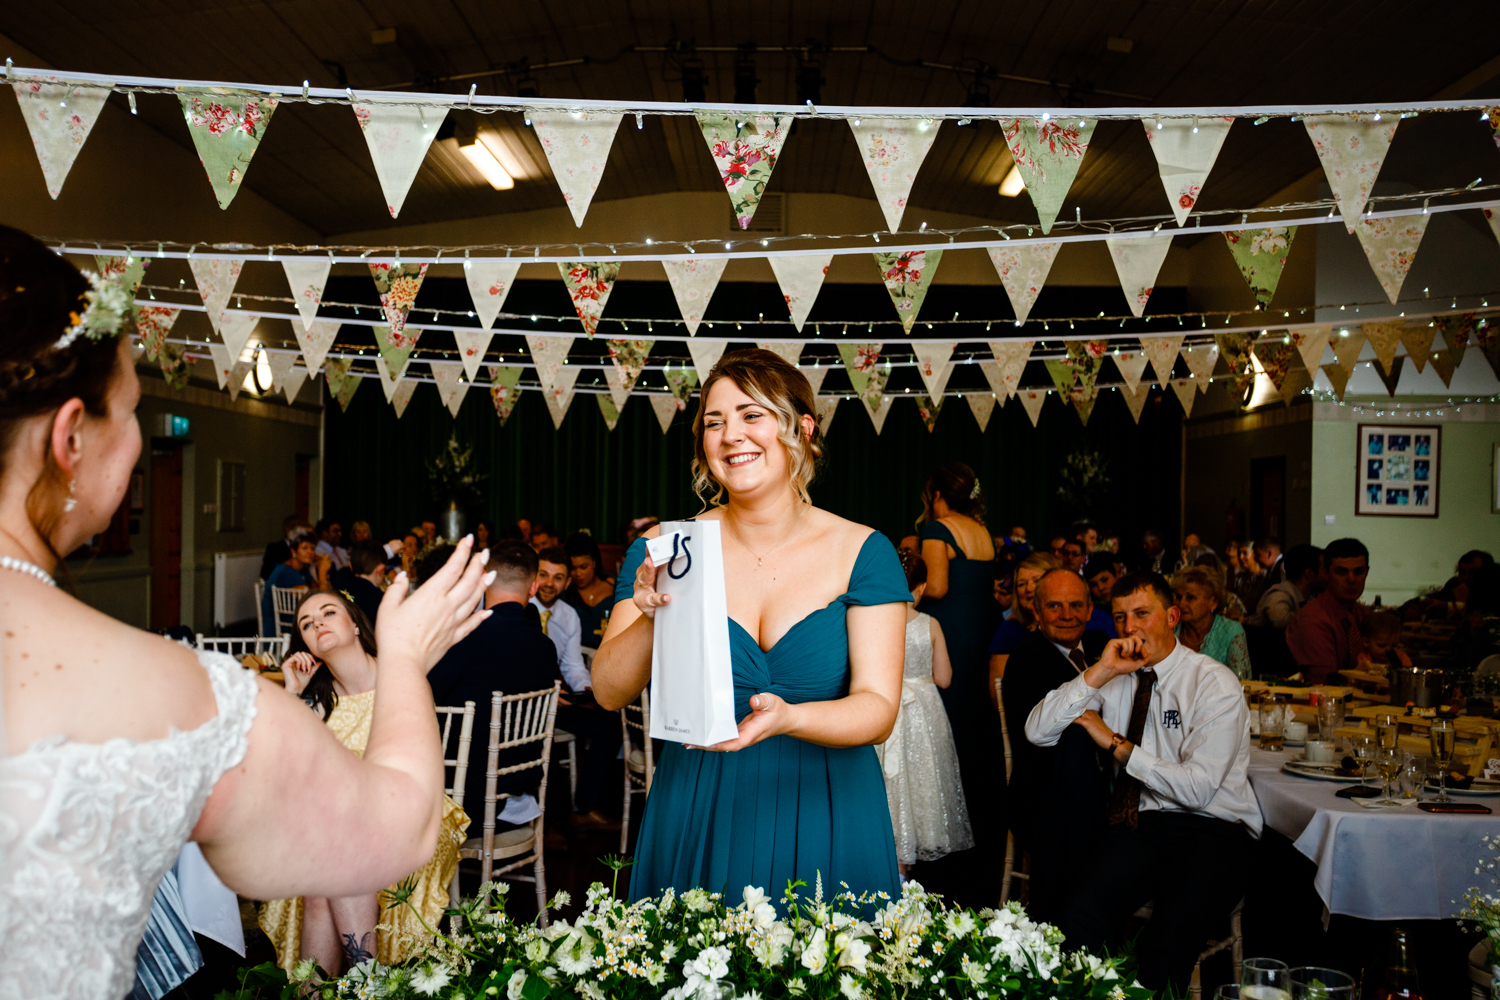 Lancashire-wedding-photographer-adele-and-alex-110.jpg